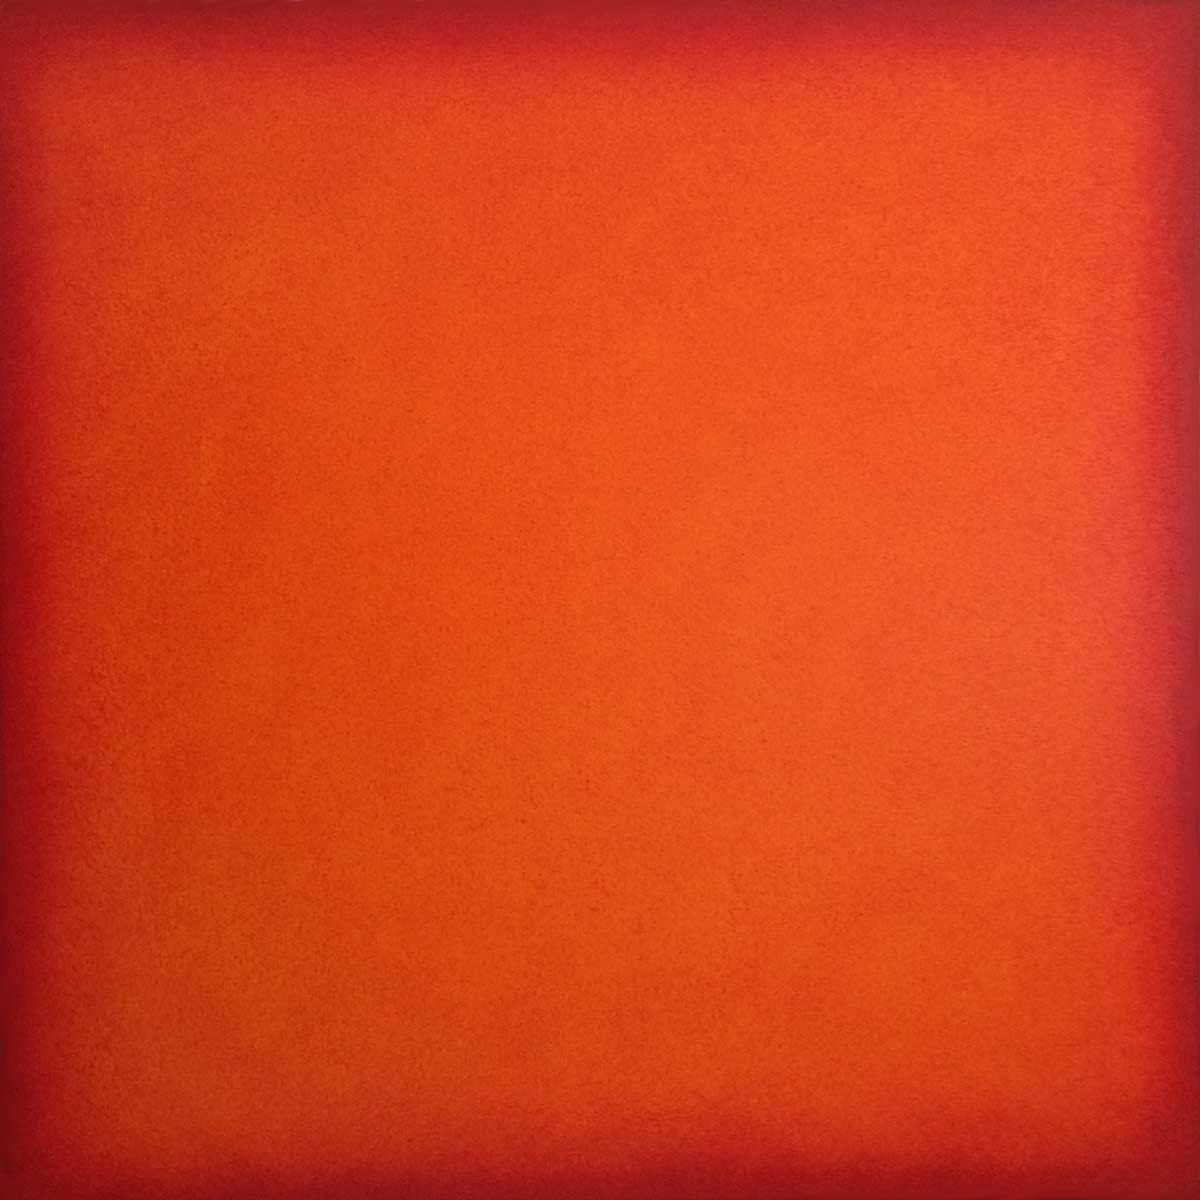 GERMANY | deep orange | 2016 | 80x80 | Öl auf Leinwand